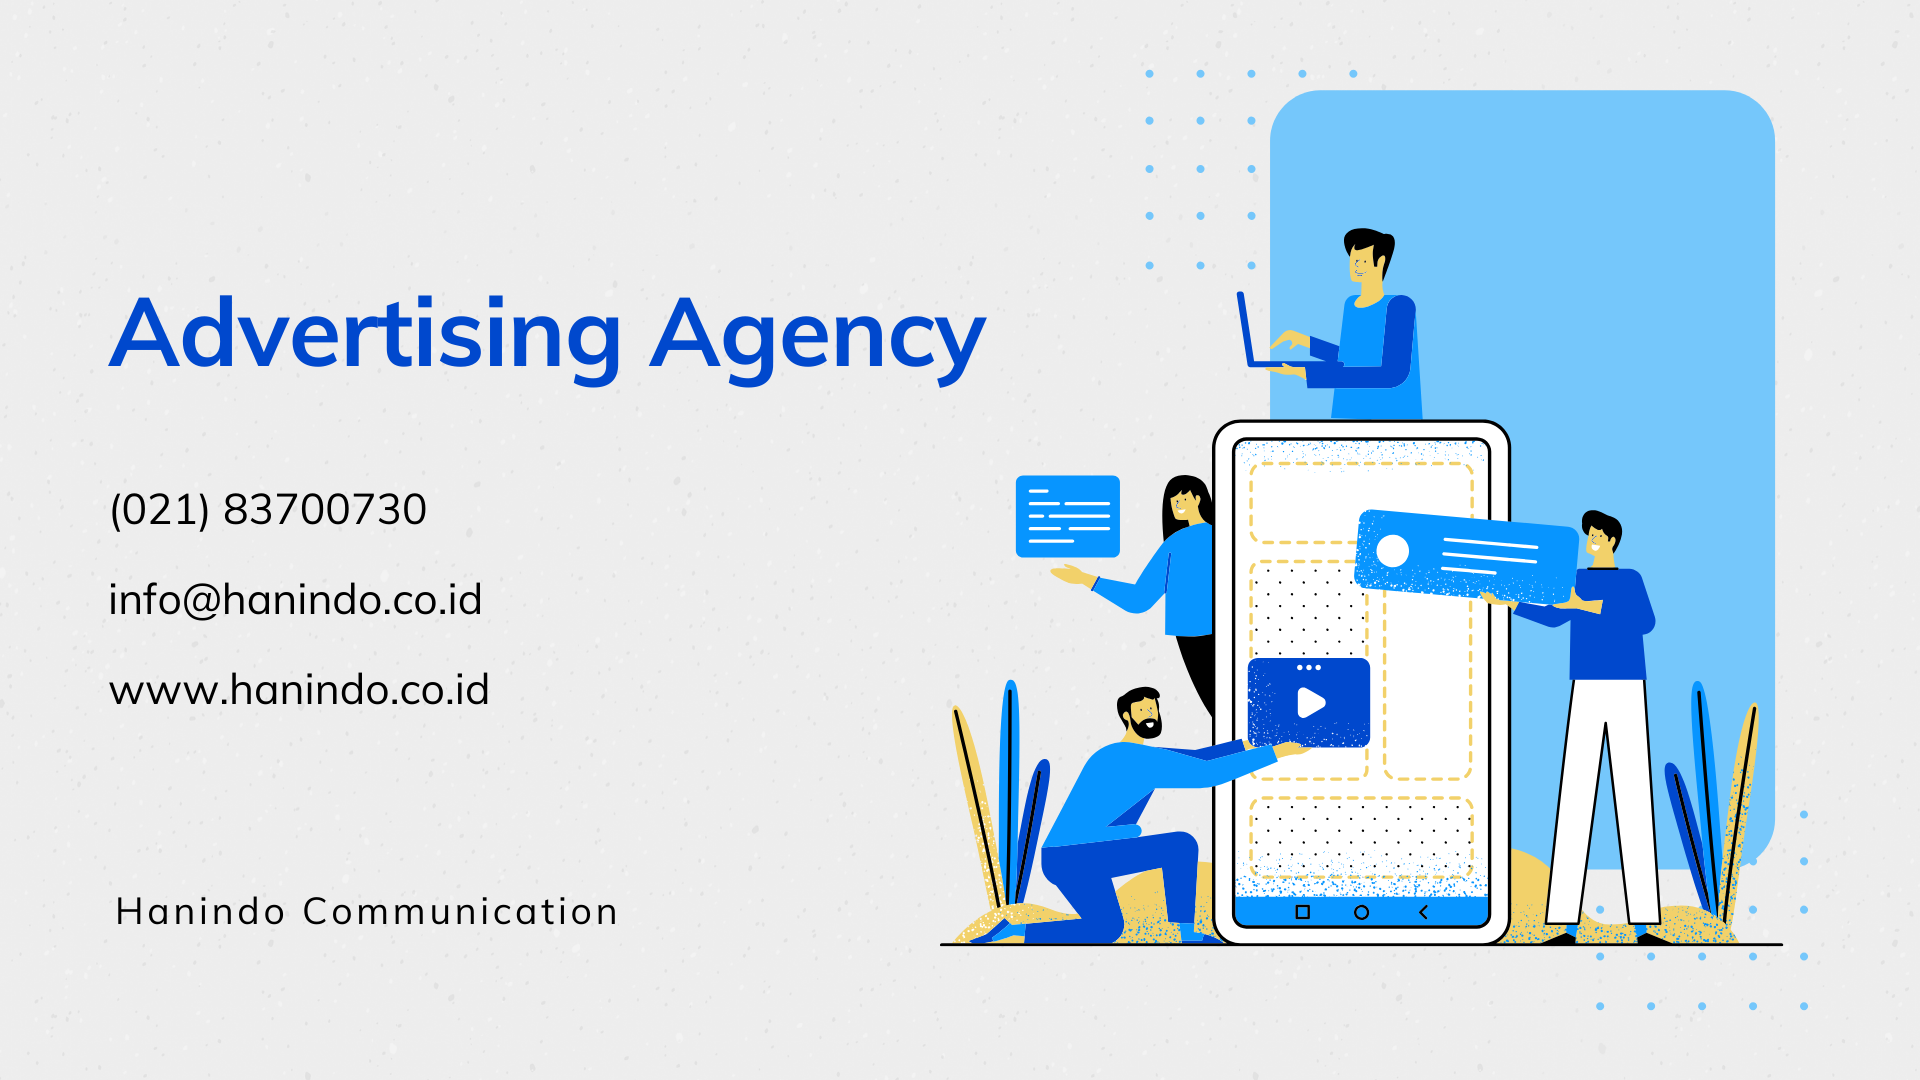 Advertising Agency Hanindo